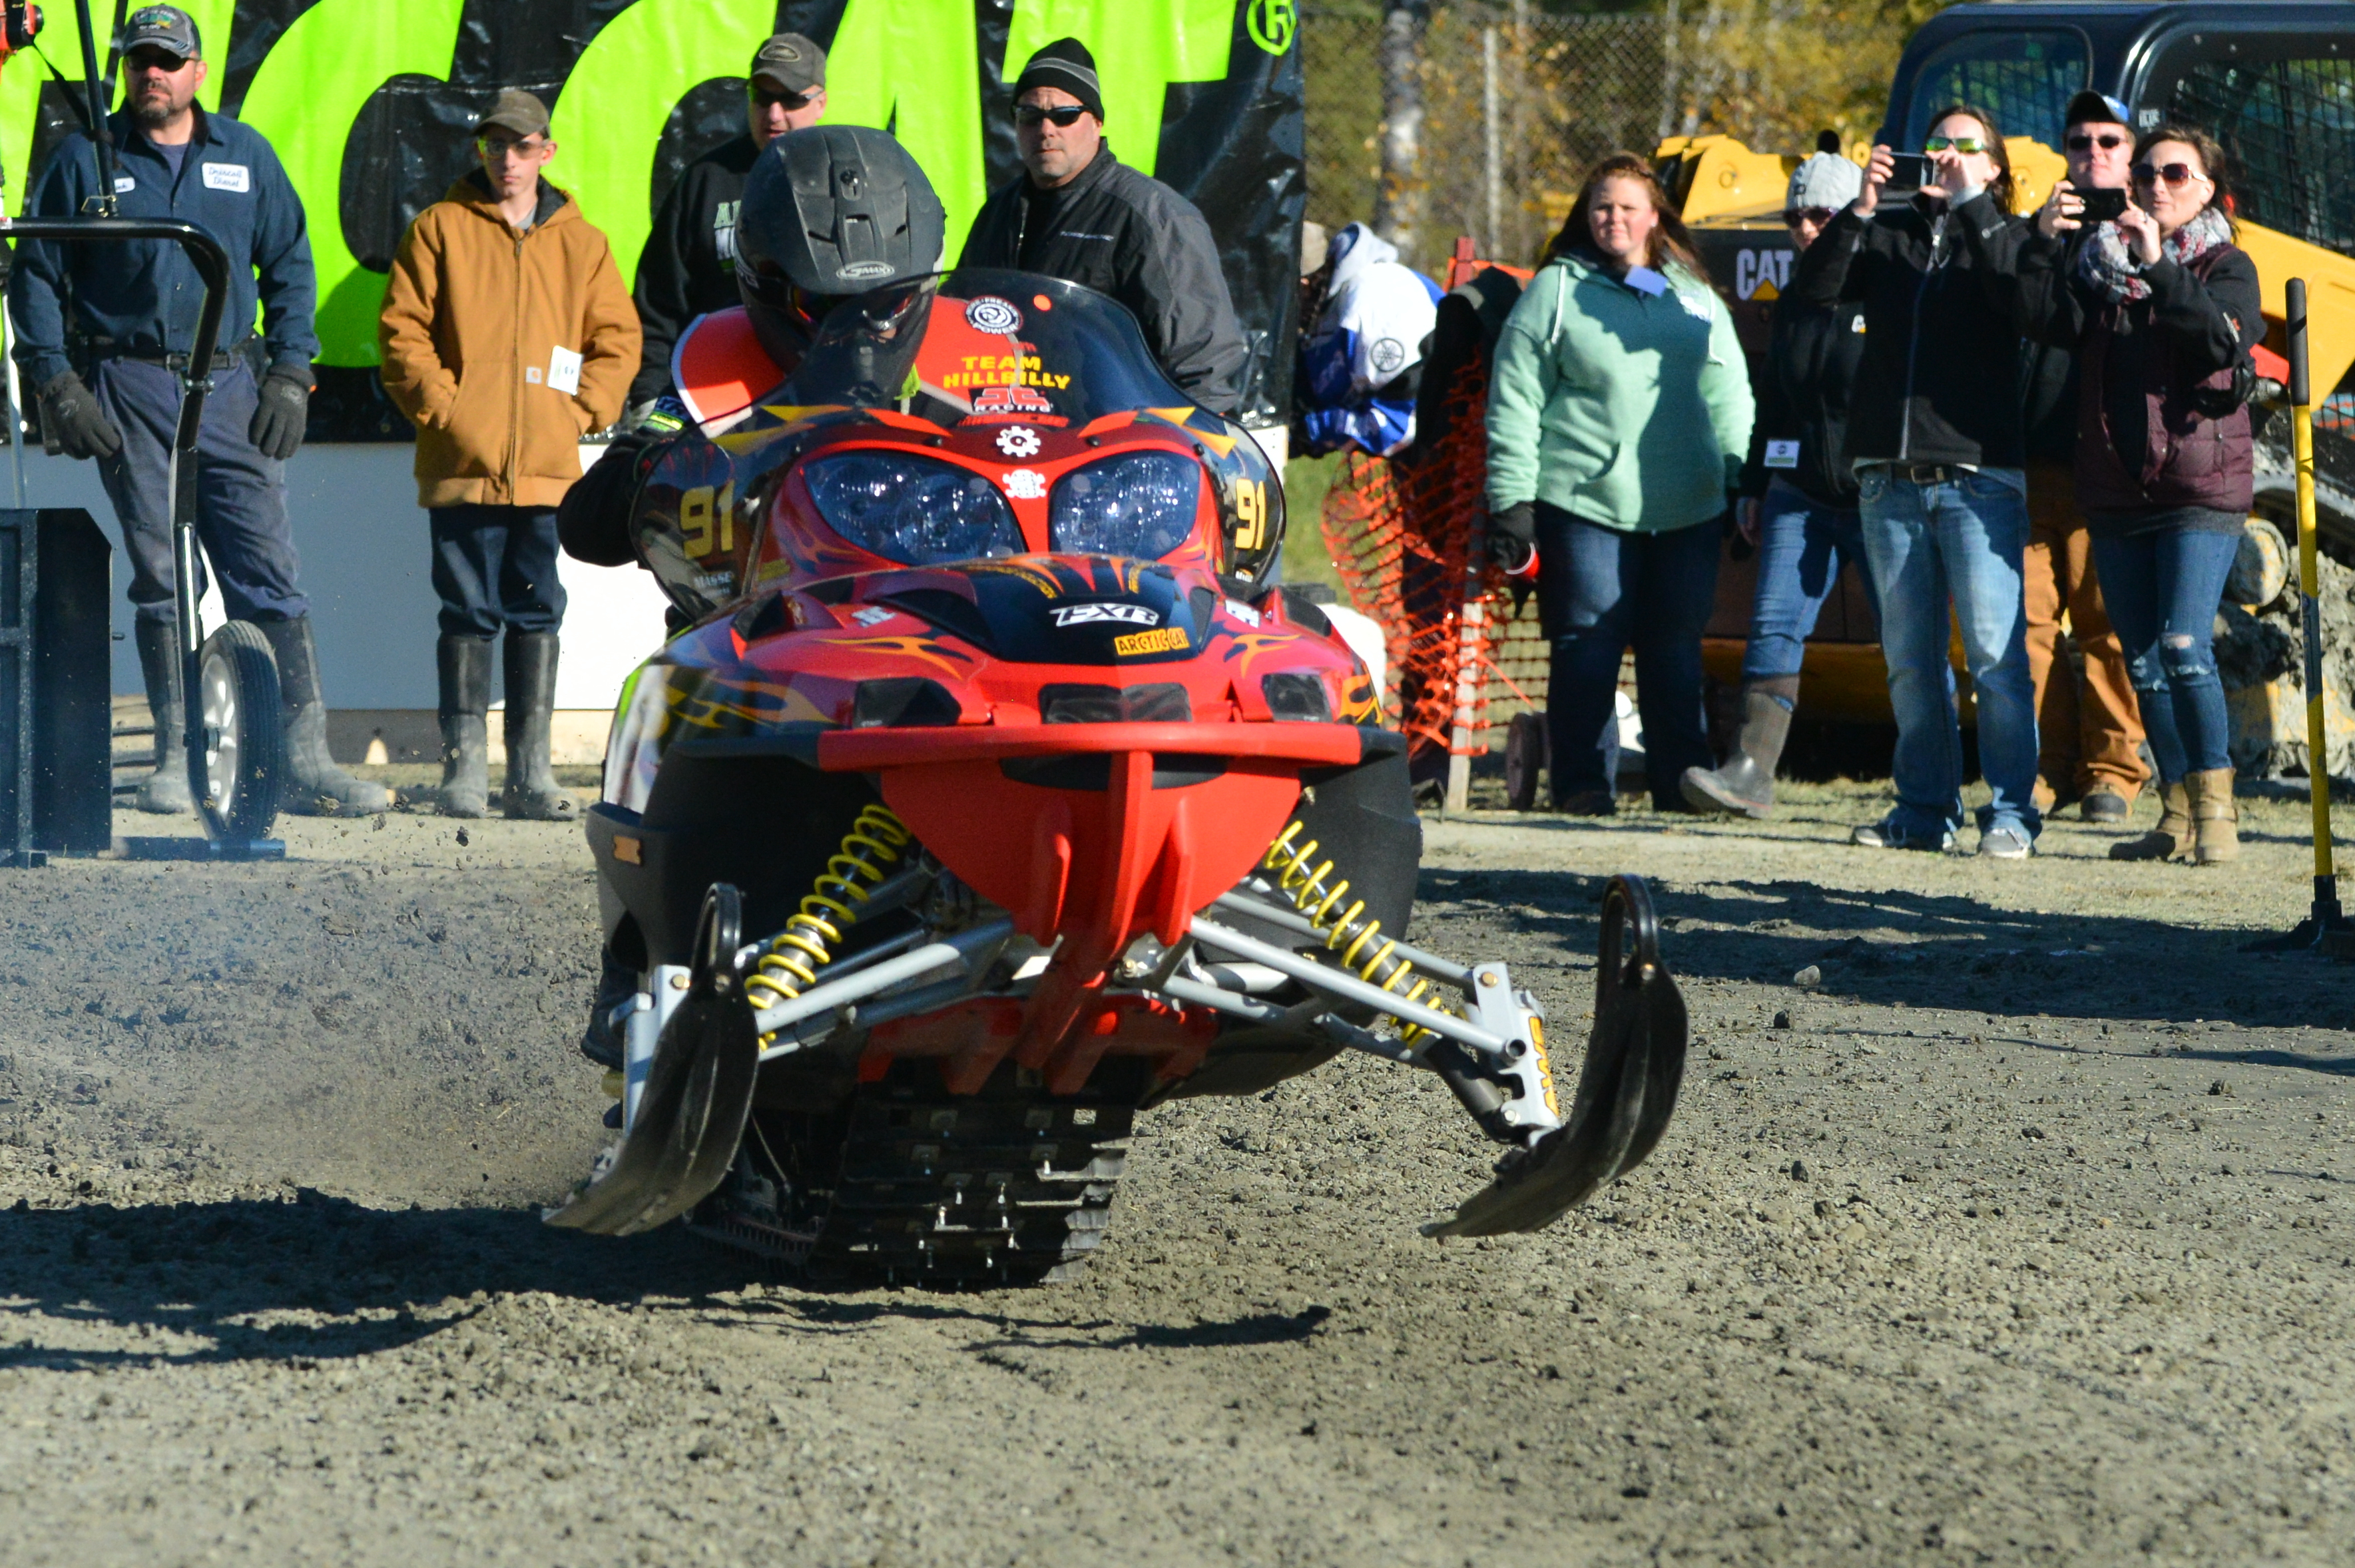 Snowmobile grass drag racing revived in Ashland - The County